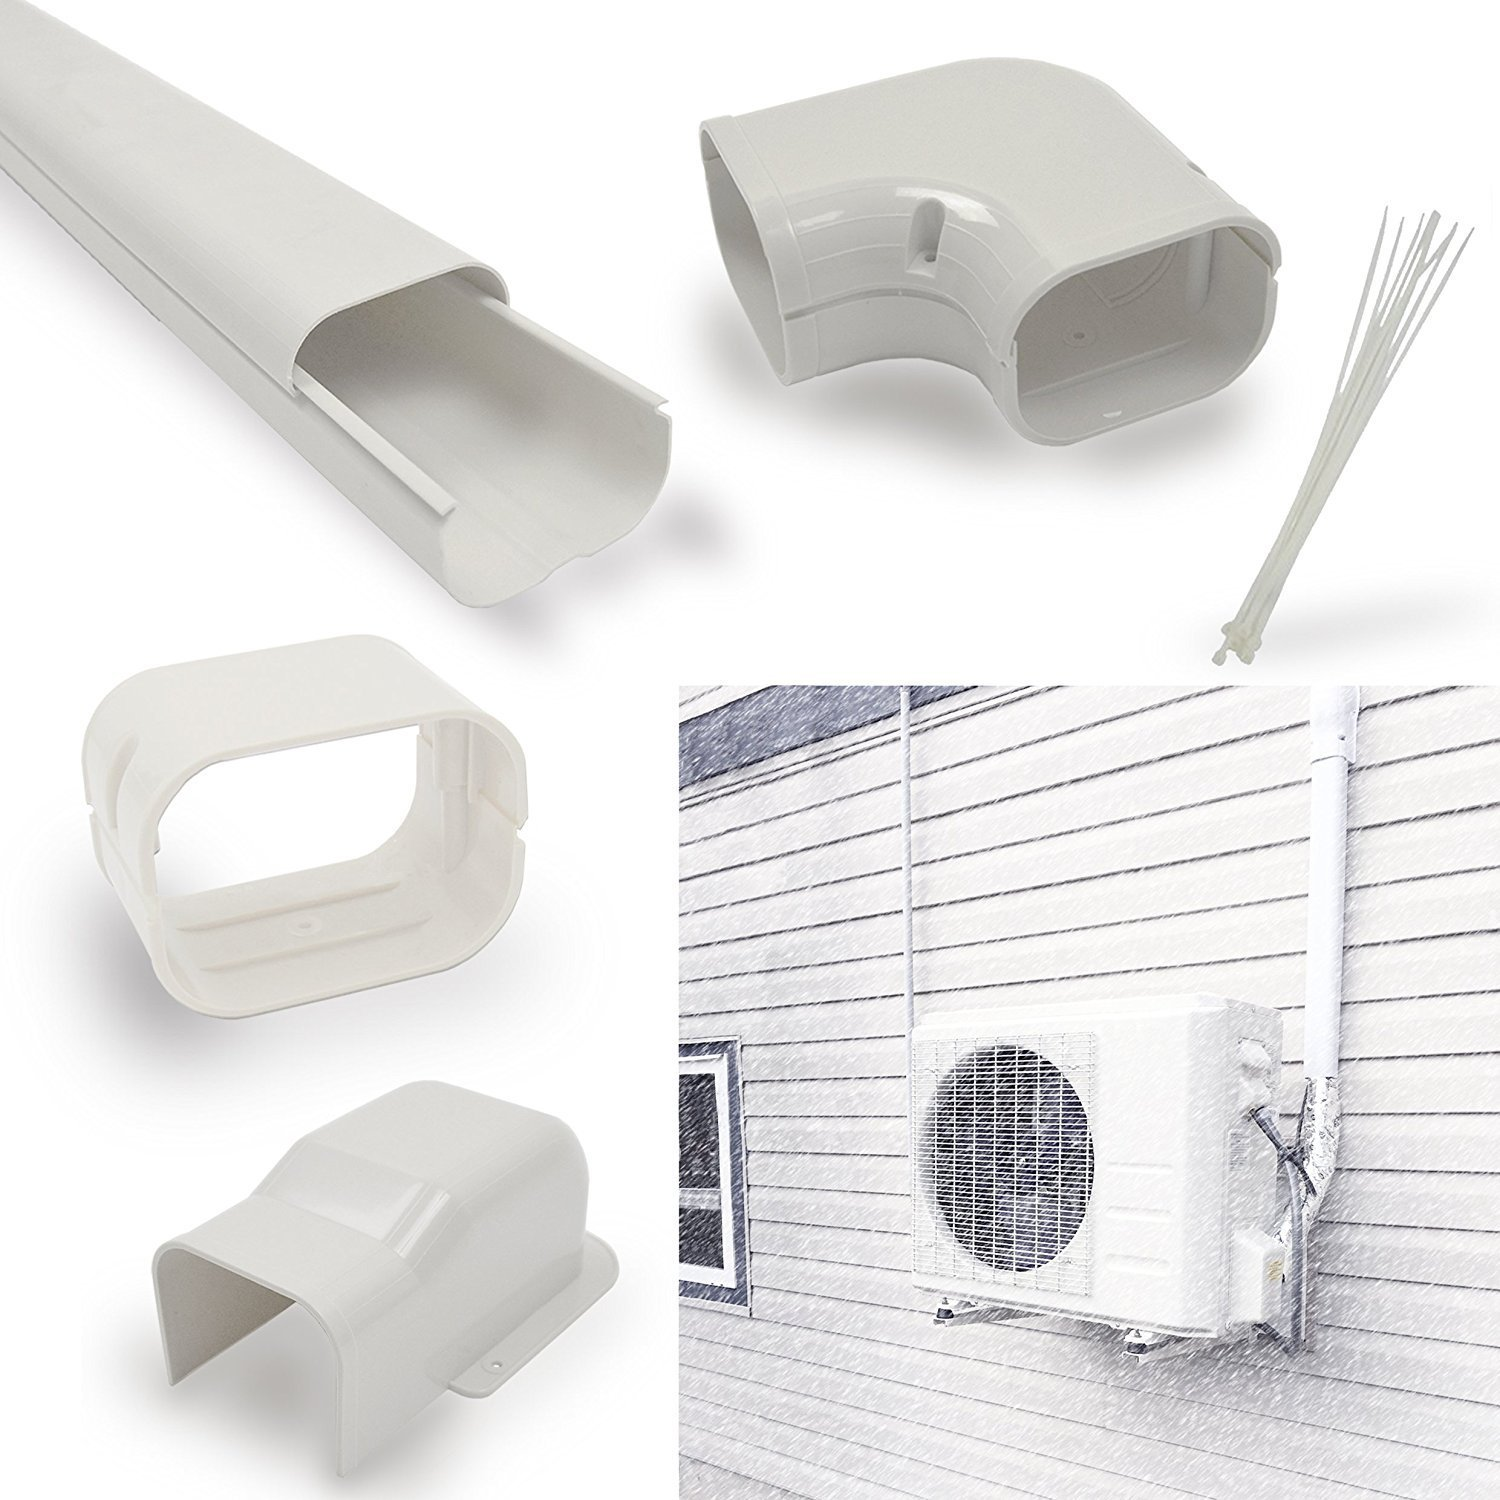 Jeacent 4 W 14'Ft Line Set Cover Kit -Decorative Tubing Cover for Mini Split and Central Air Conditioner & Heat Pump Jeacent Inovations